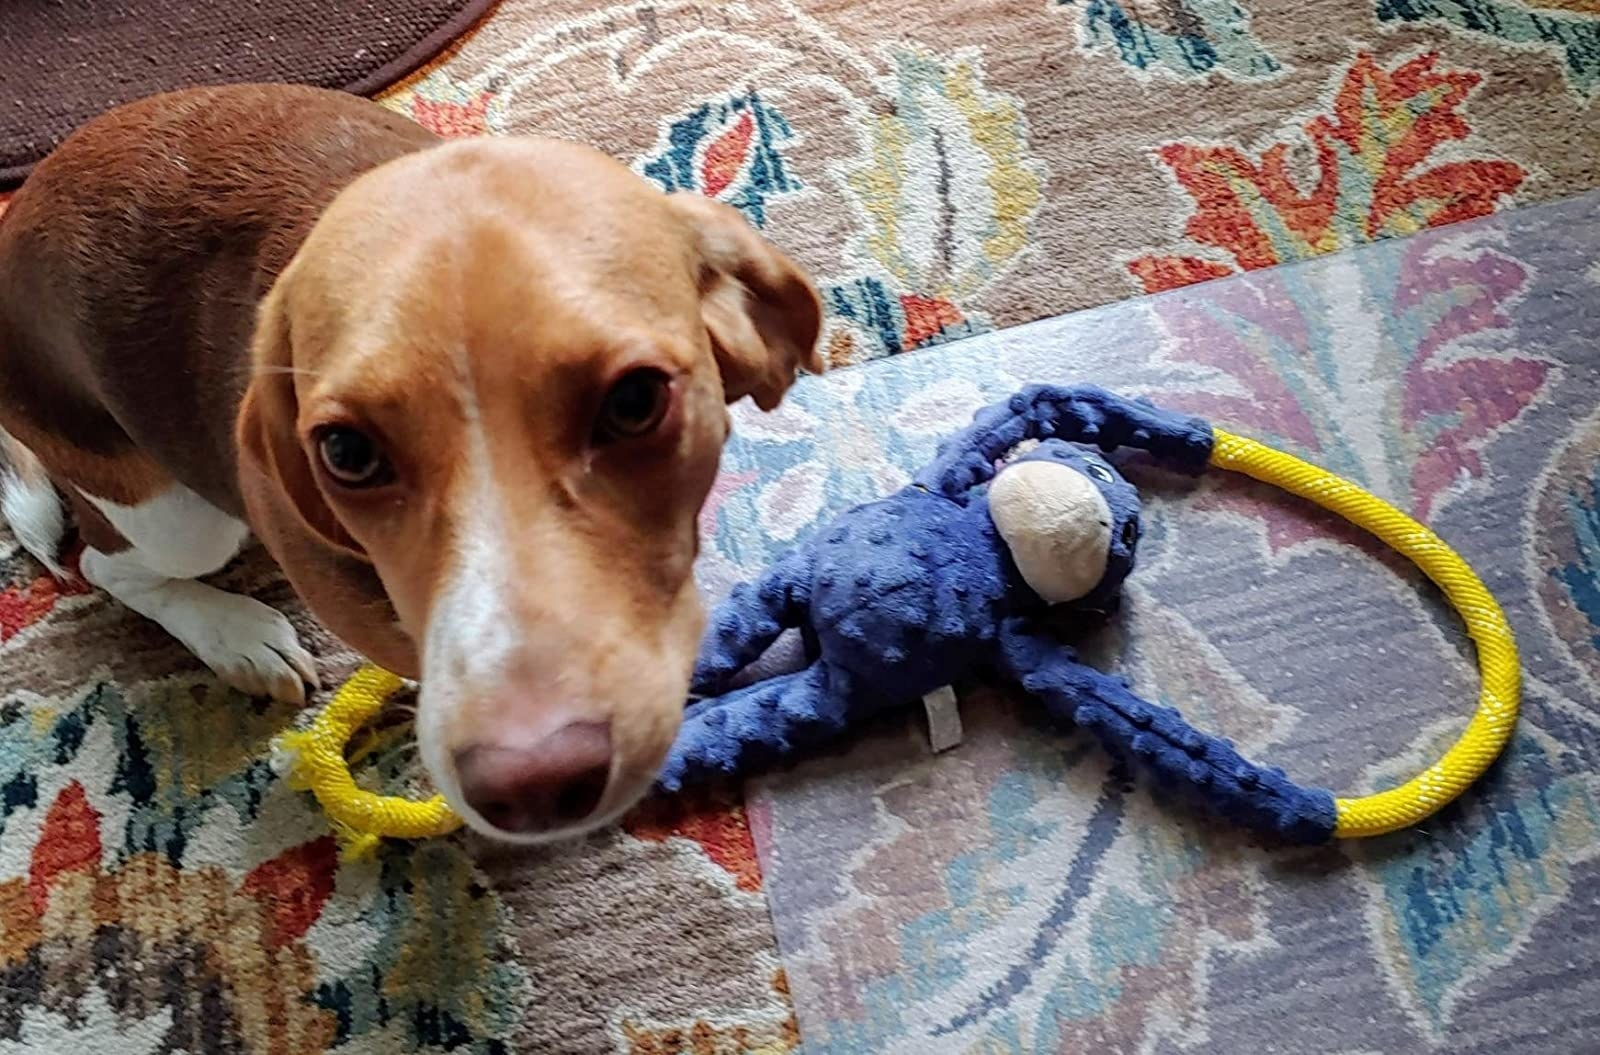 A dog plays with the toy, which is a stuffed money doll with rope loops extending between its arms and legs